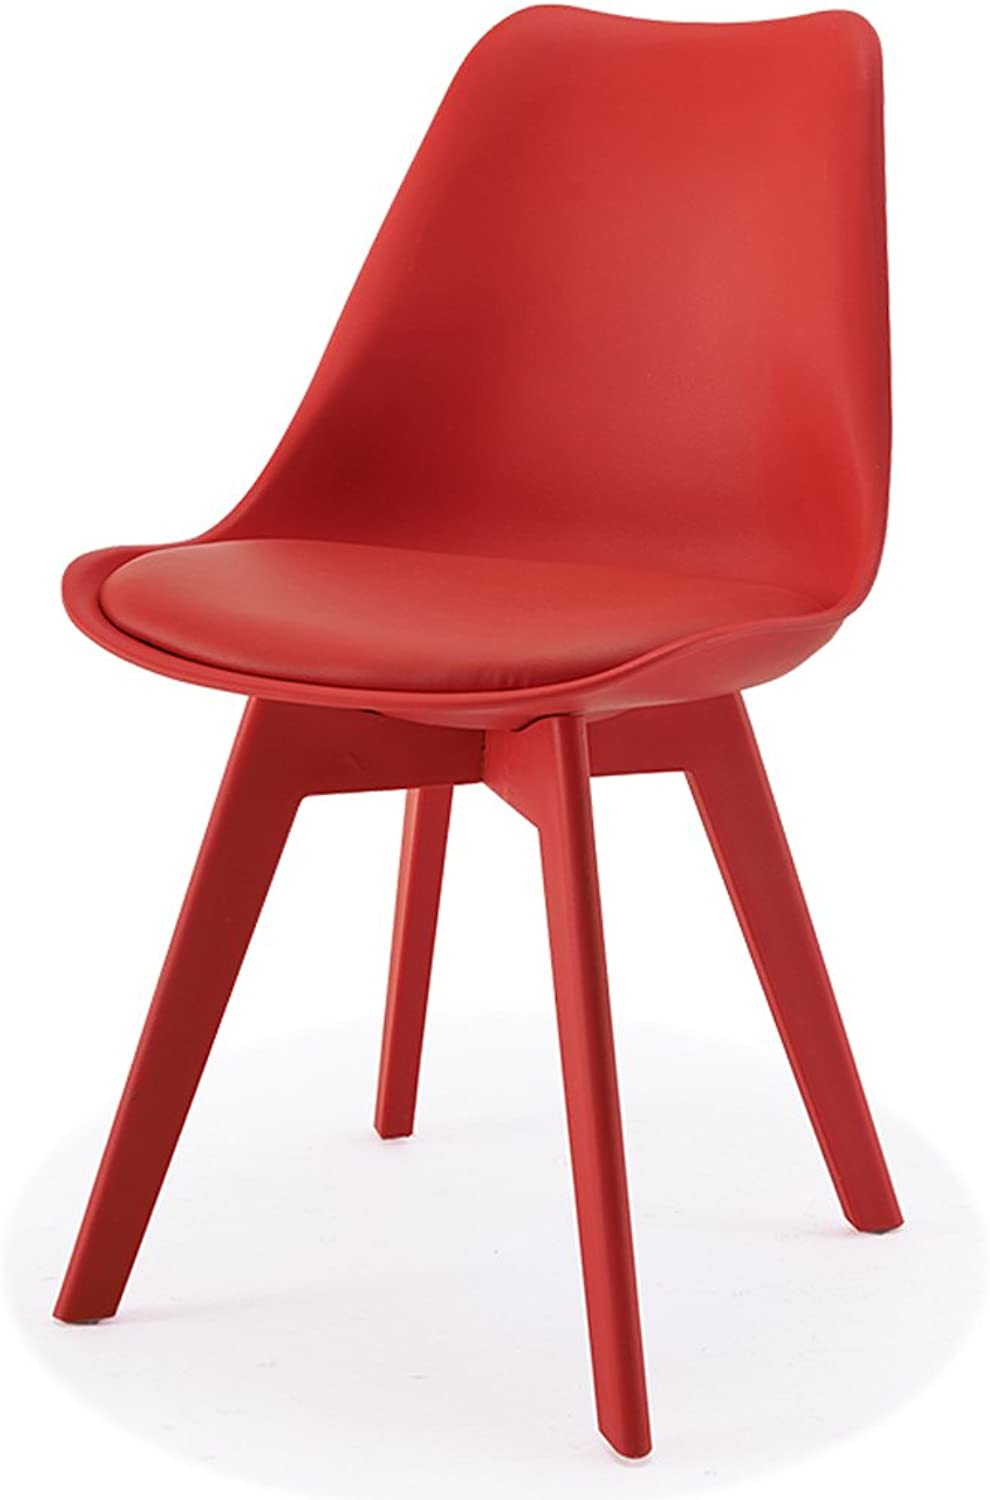 CJH Nordic Leisure Plastic Dining Chair Modern Minimalist Creative Eames Chair color Desk Chair Table and Chair (color   Red)